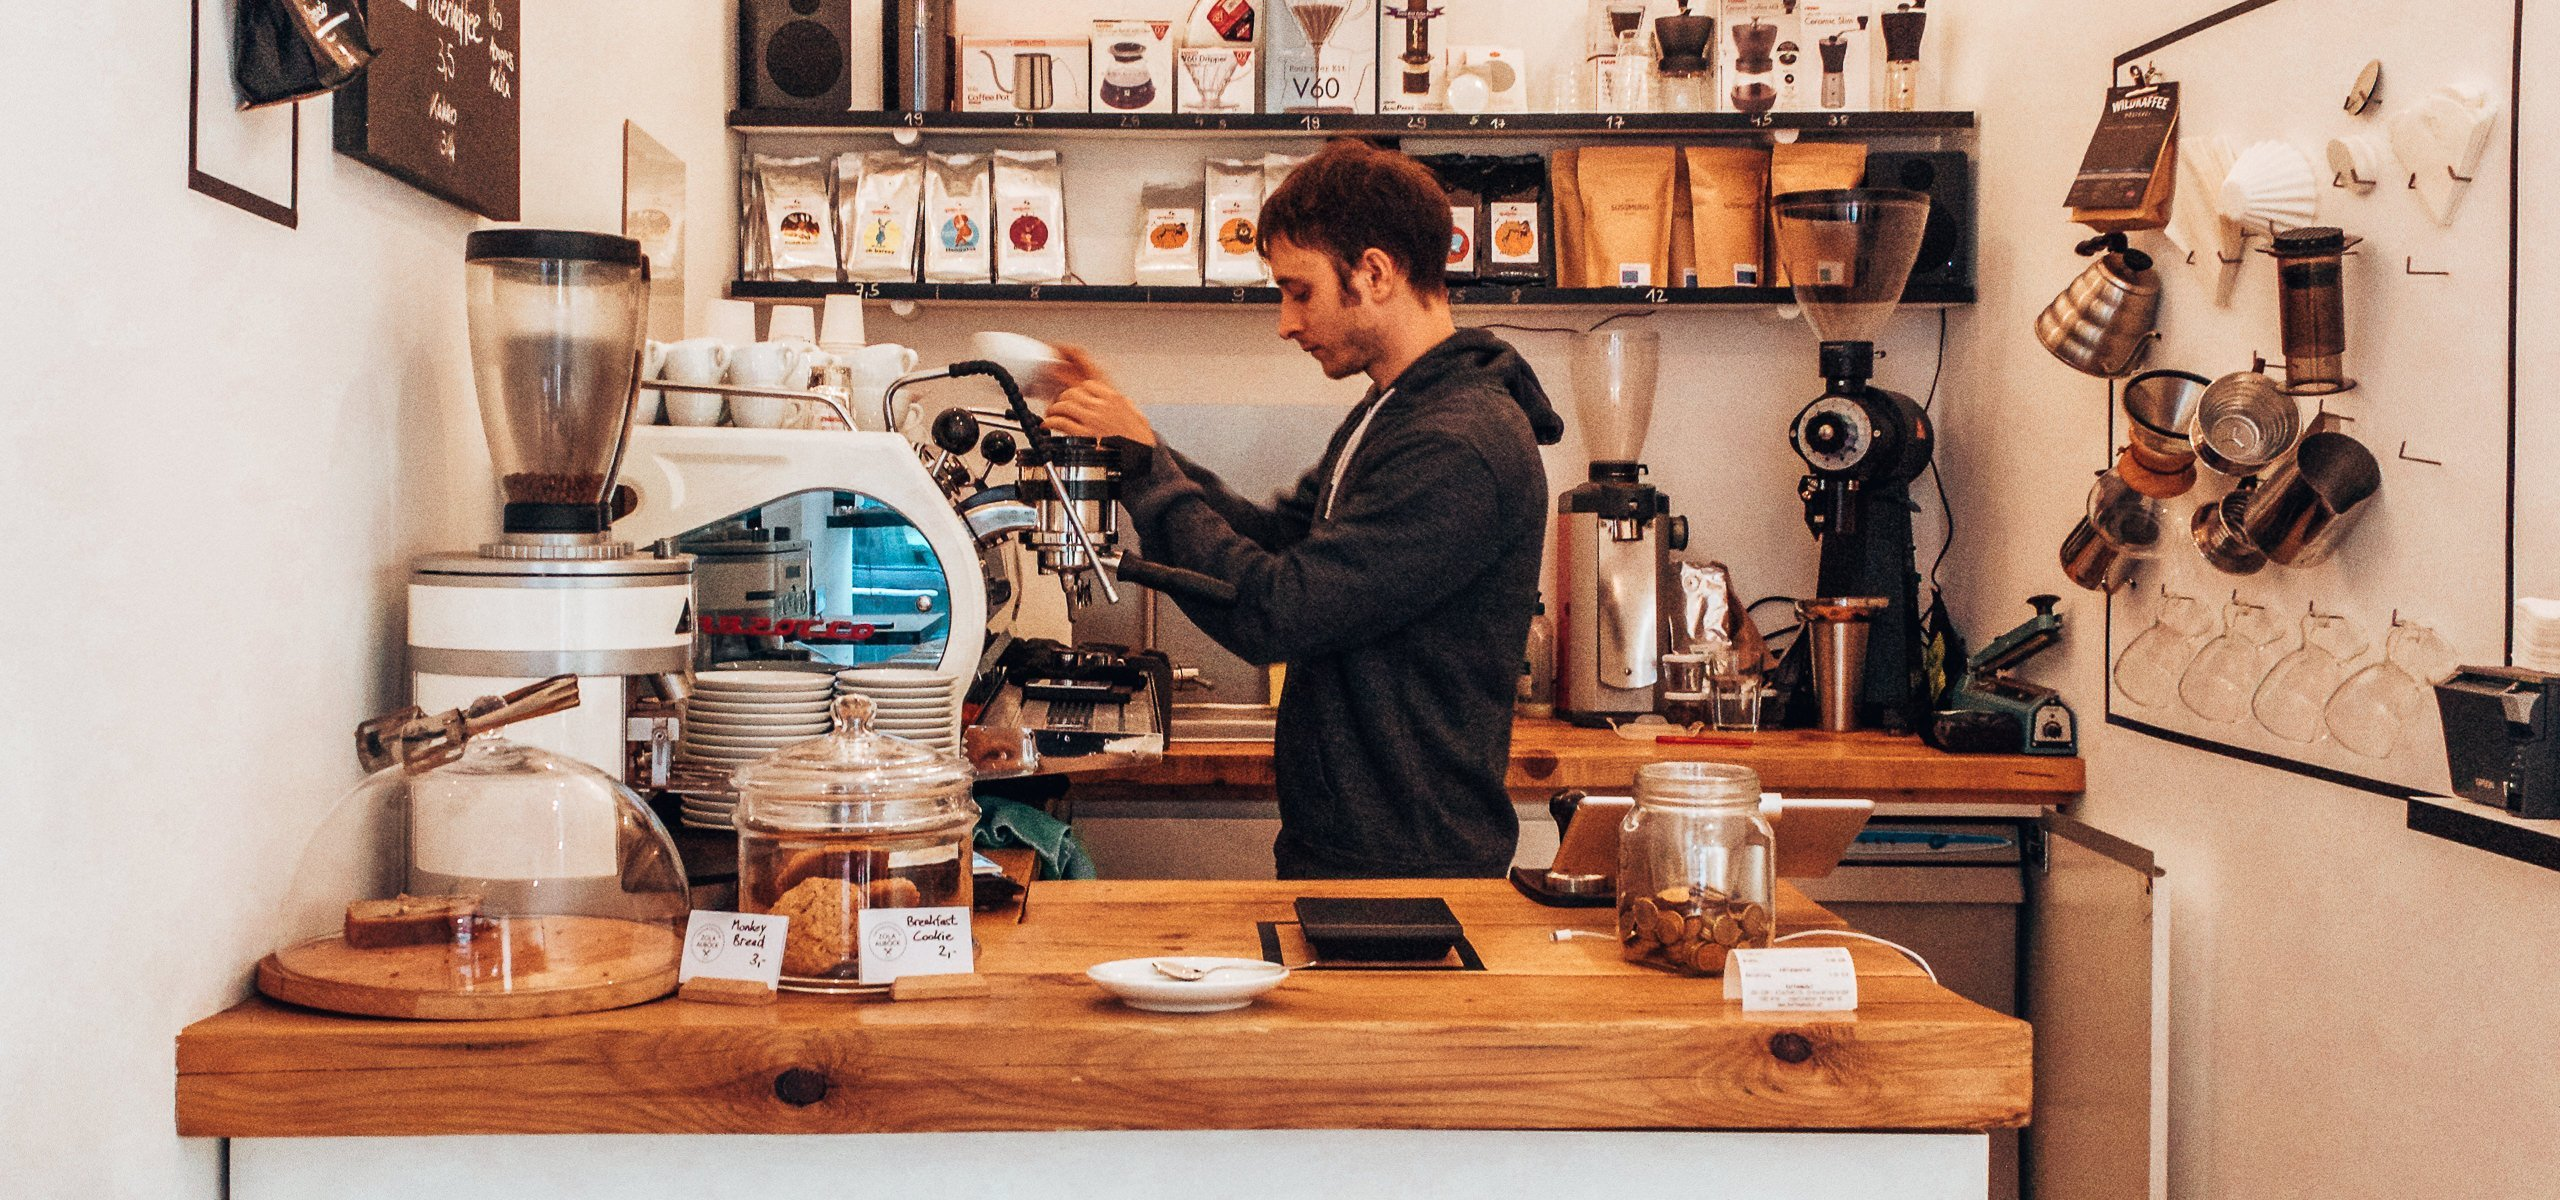 The Best Coffee Places In Vienna: 5 Coffeehouses You Need To Know